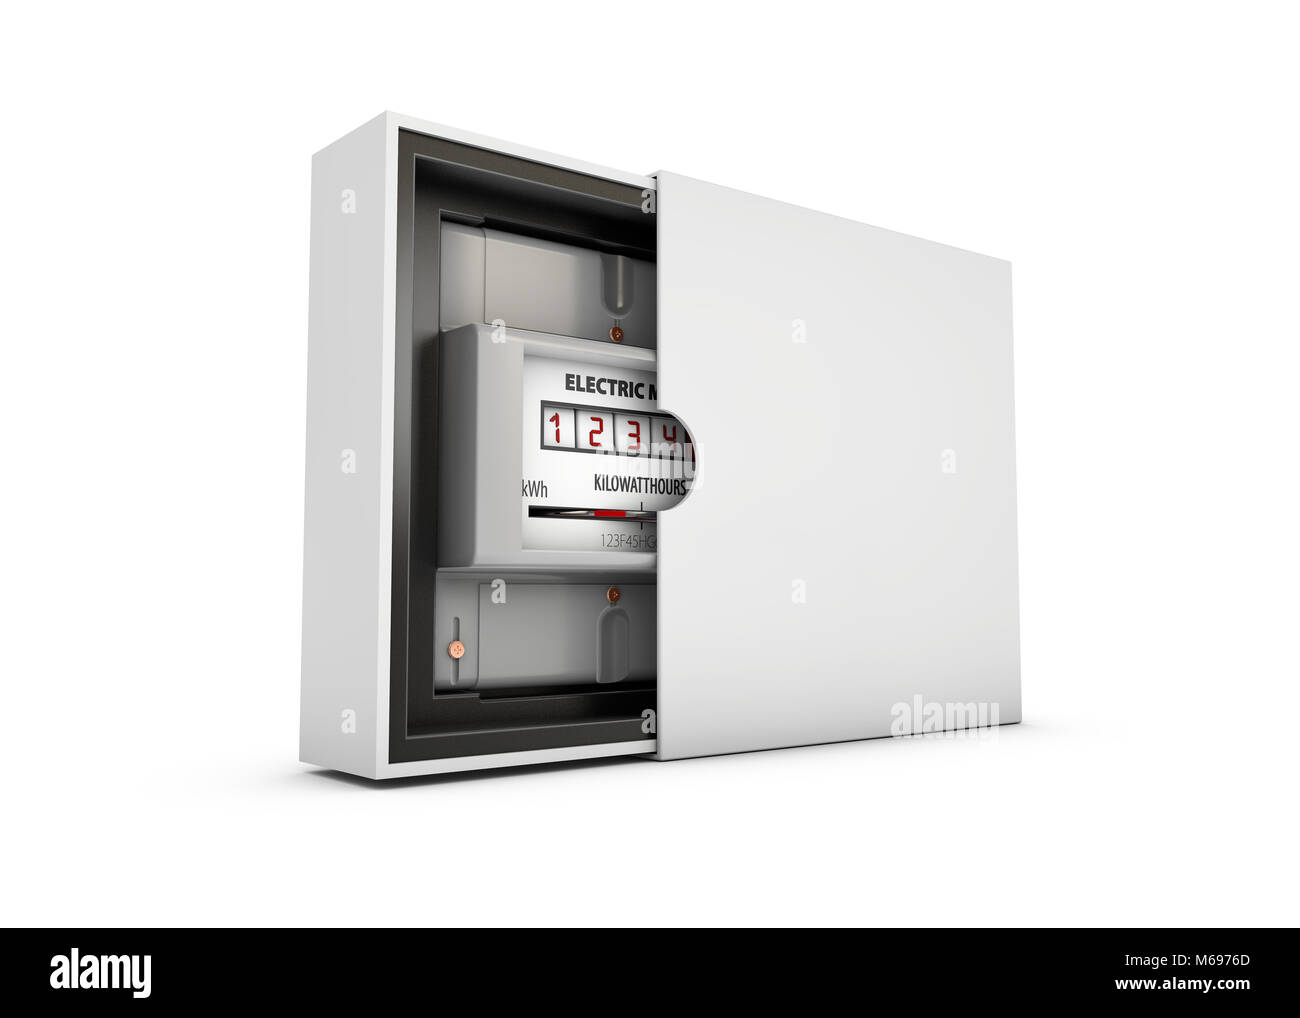 Electric meter in the box, isolated on white background 3d Illustration. - Stock Image